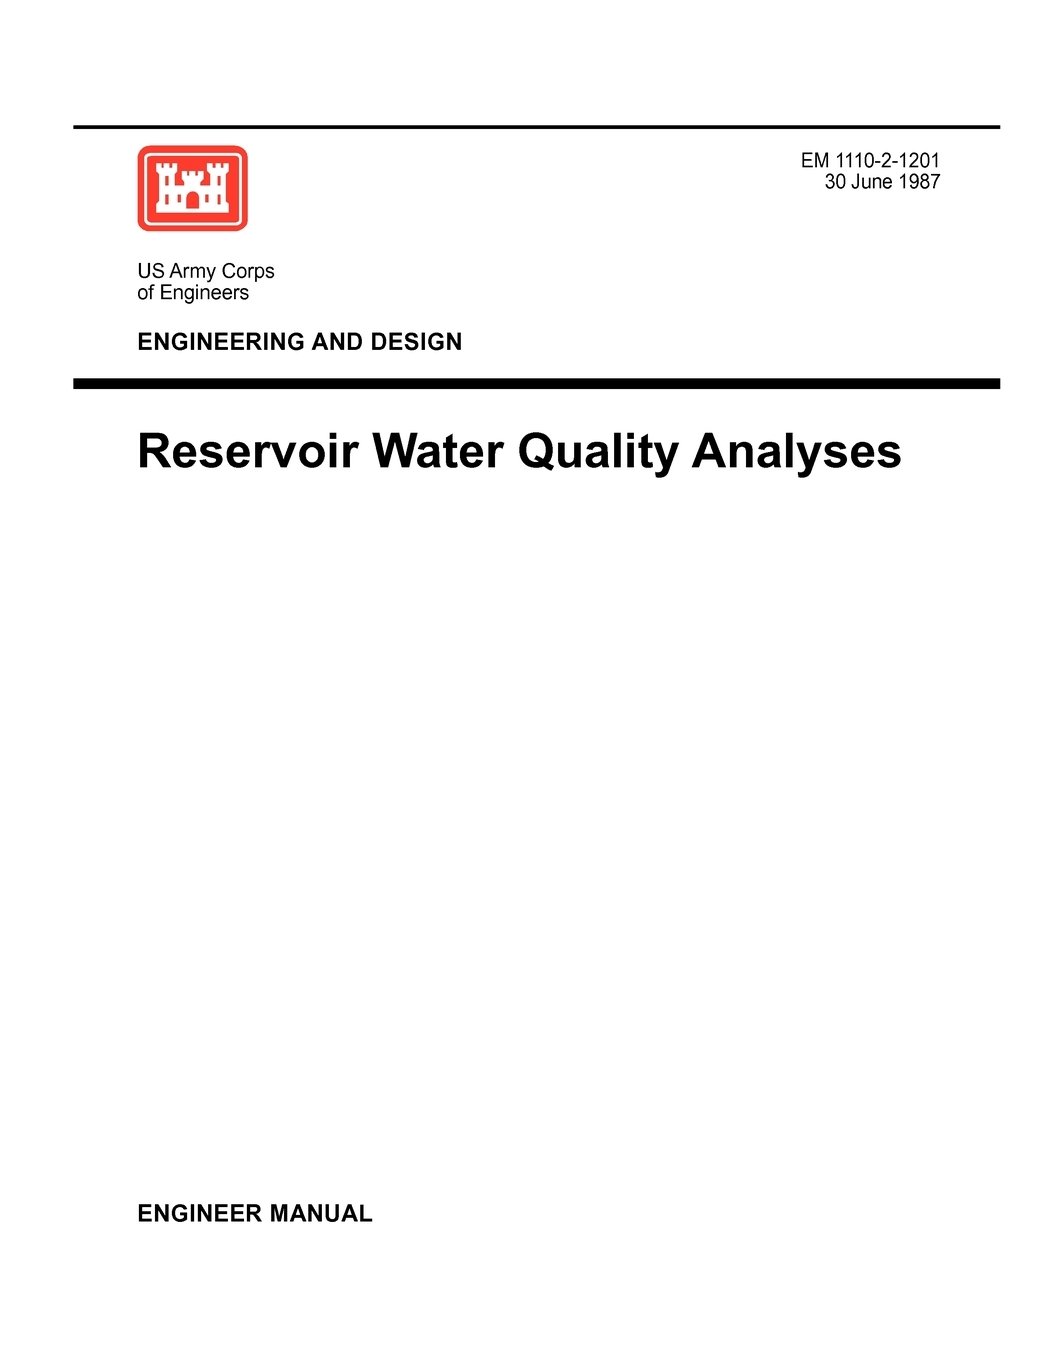 Engineering and Design : Reservoir Water Quality Analysis